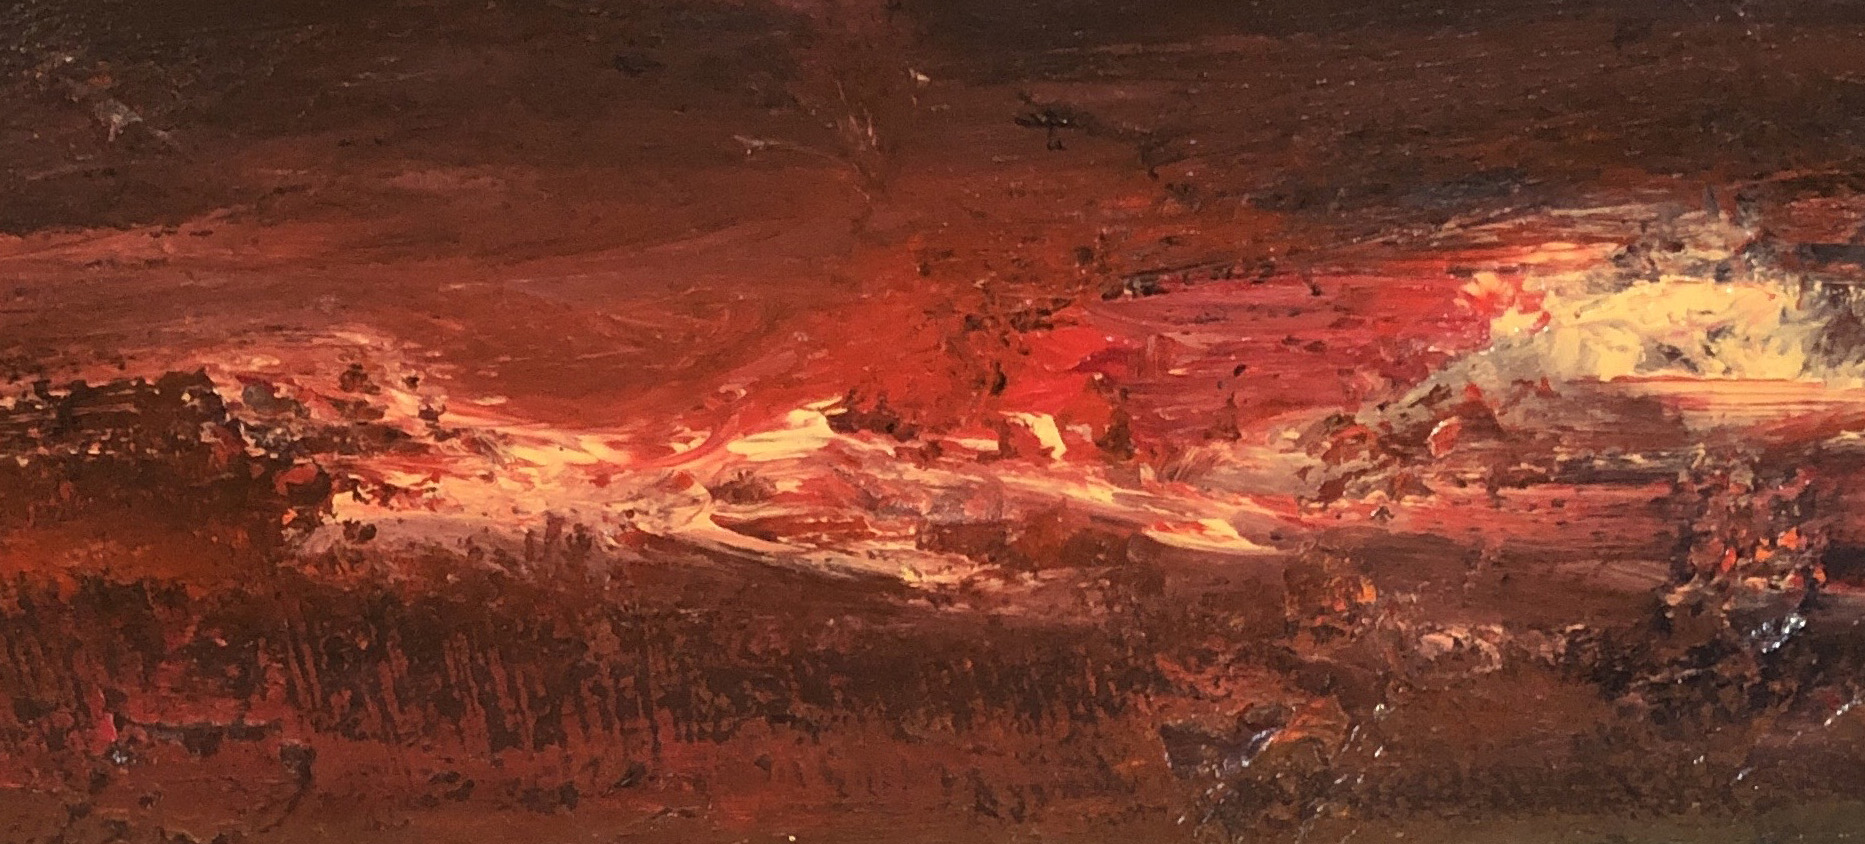 red skies at catterline – Nael Hanna – main